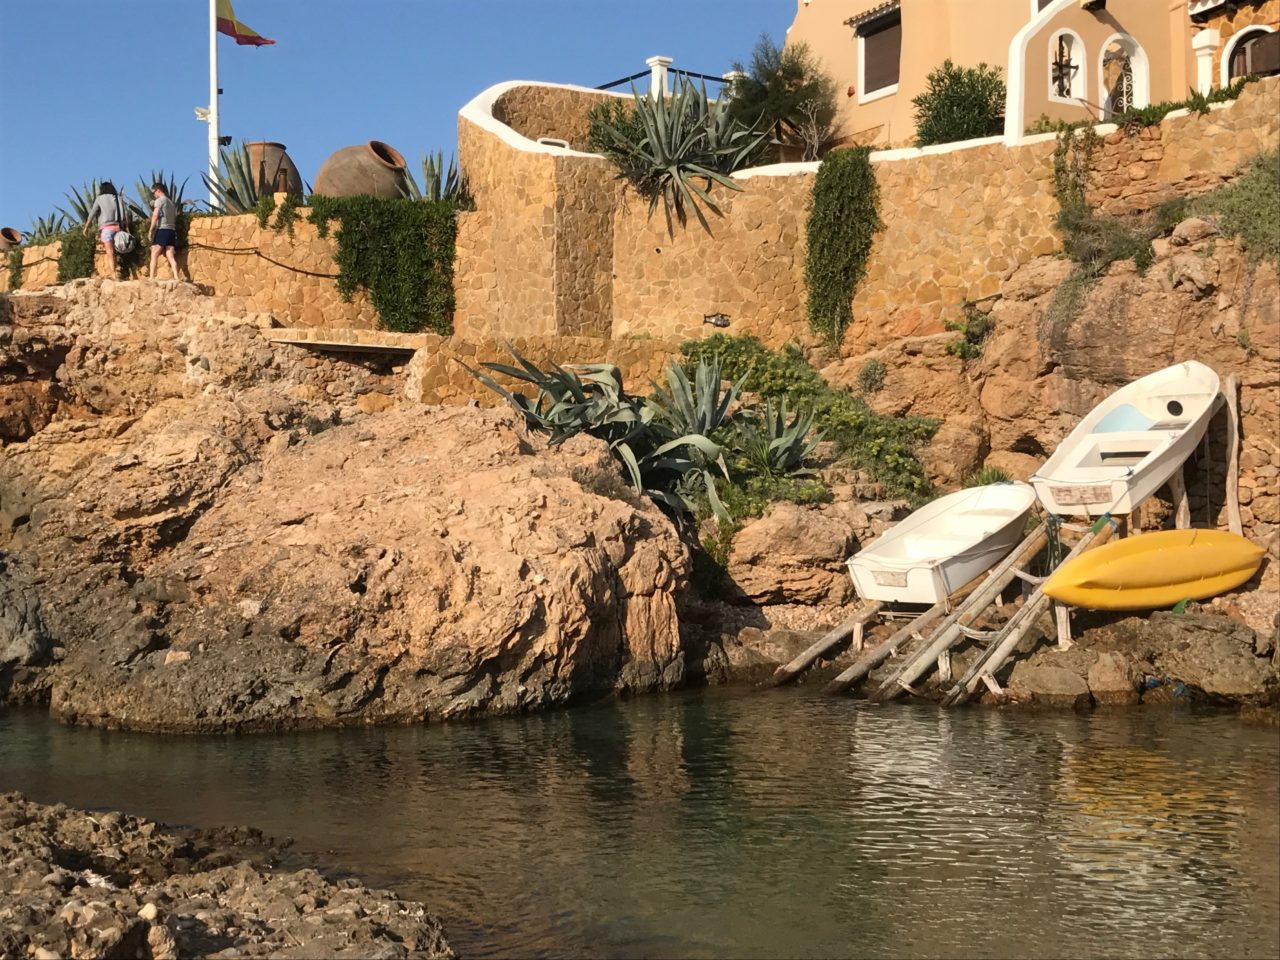 House On A Cliff With Boats And A Flag Pole